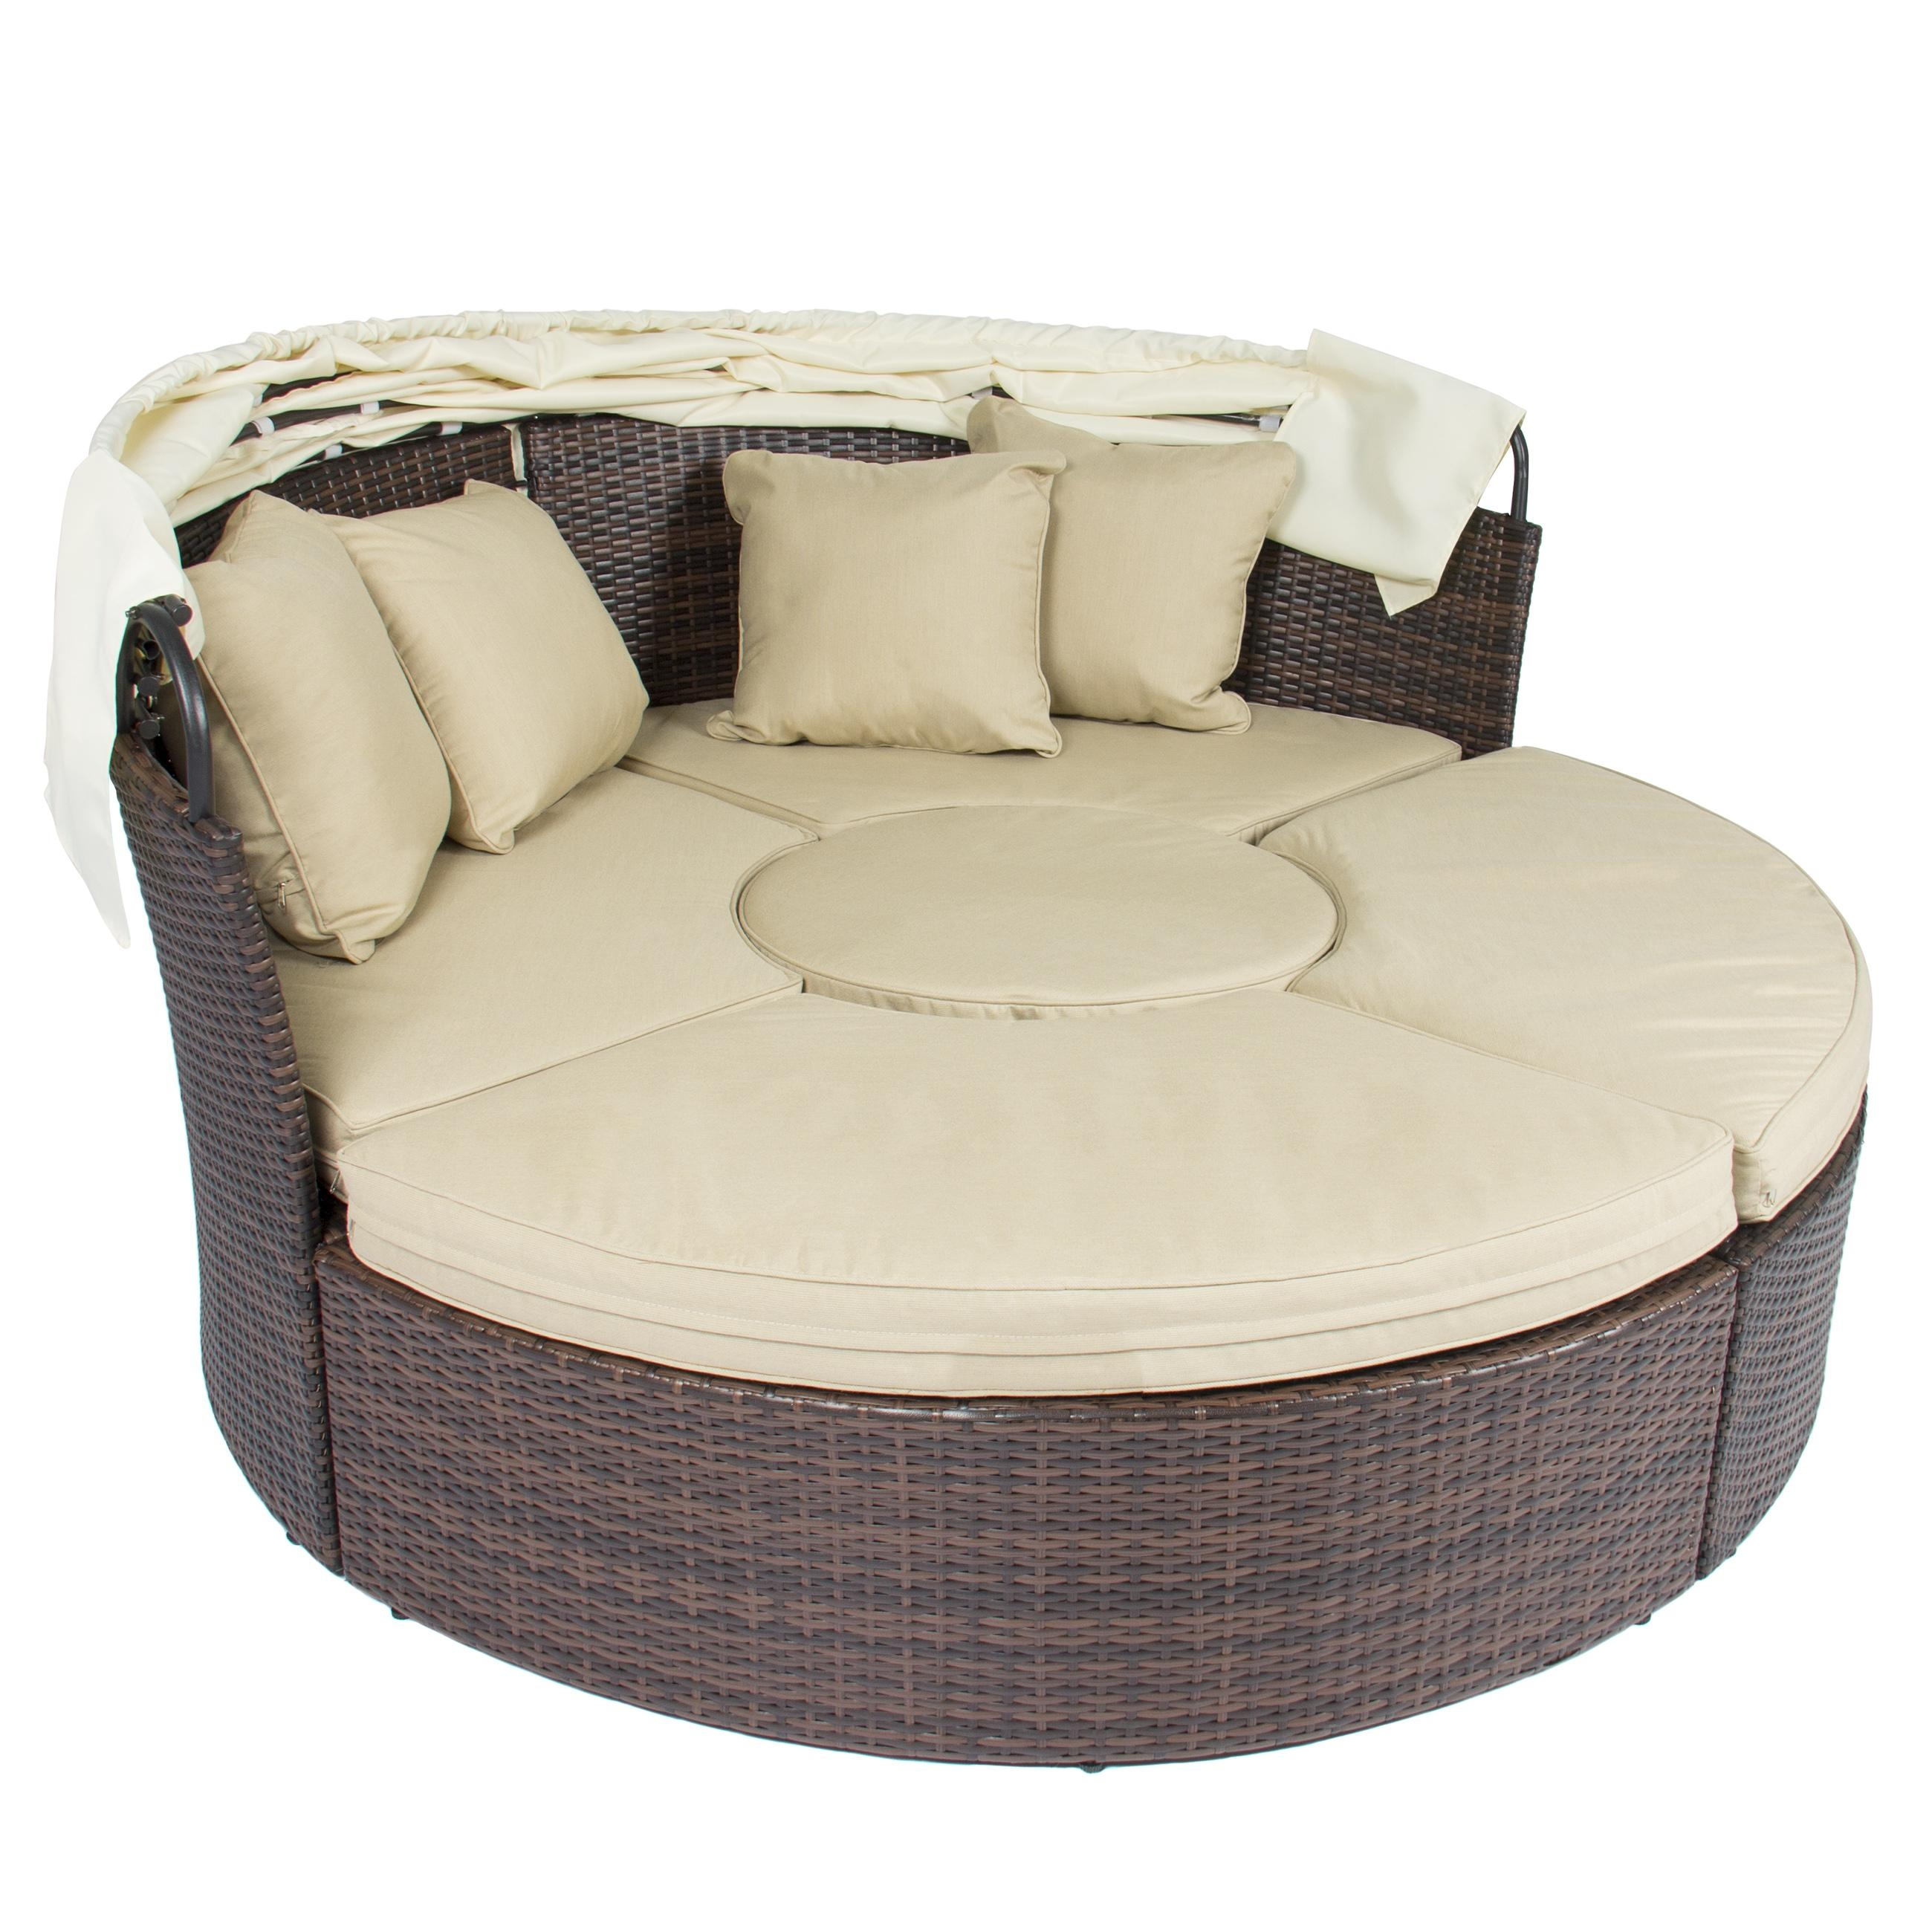 Sofas Center : Round Sofa Chair For Saleshley Furniture Big Large For Round Sofa Chair (Image 17 of 20)